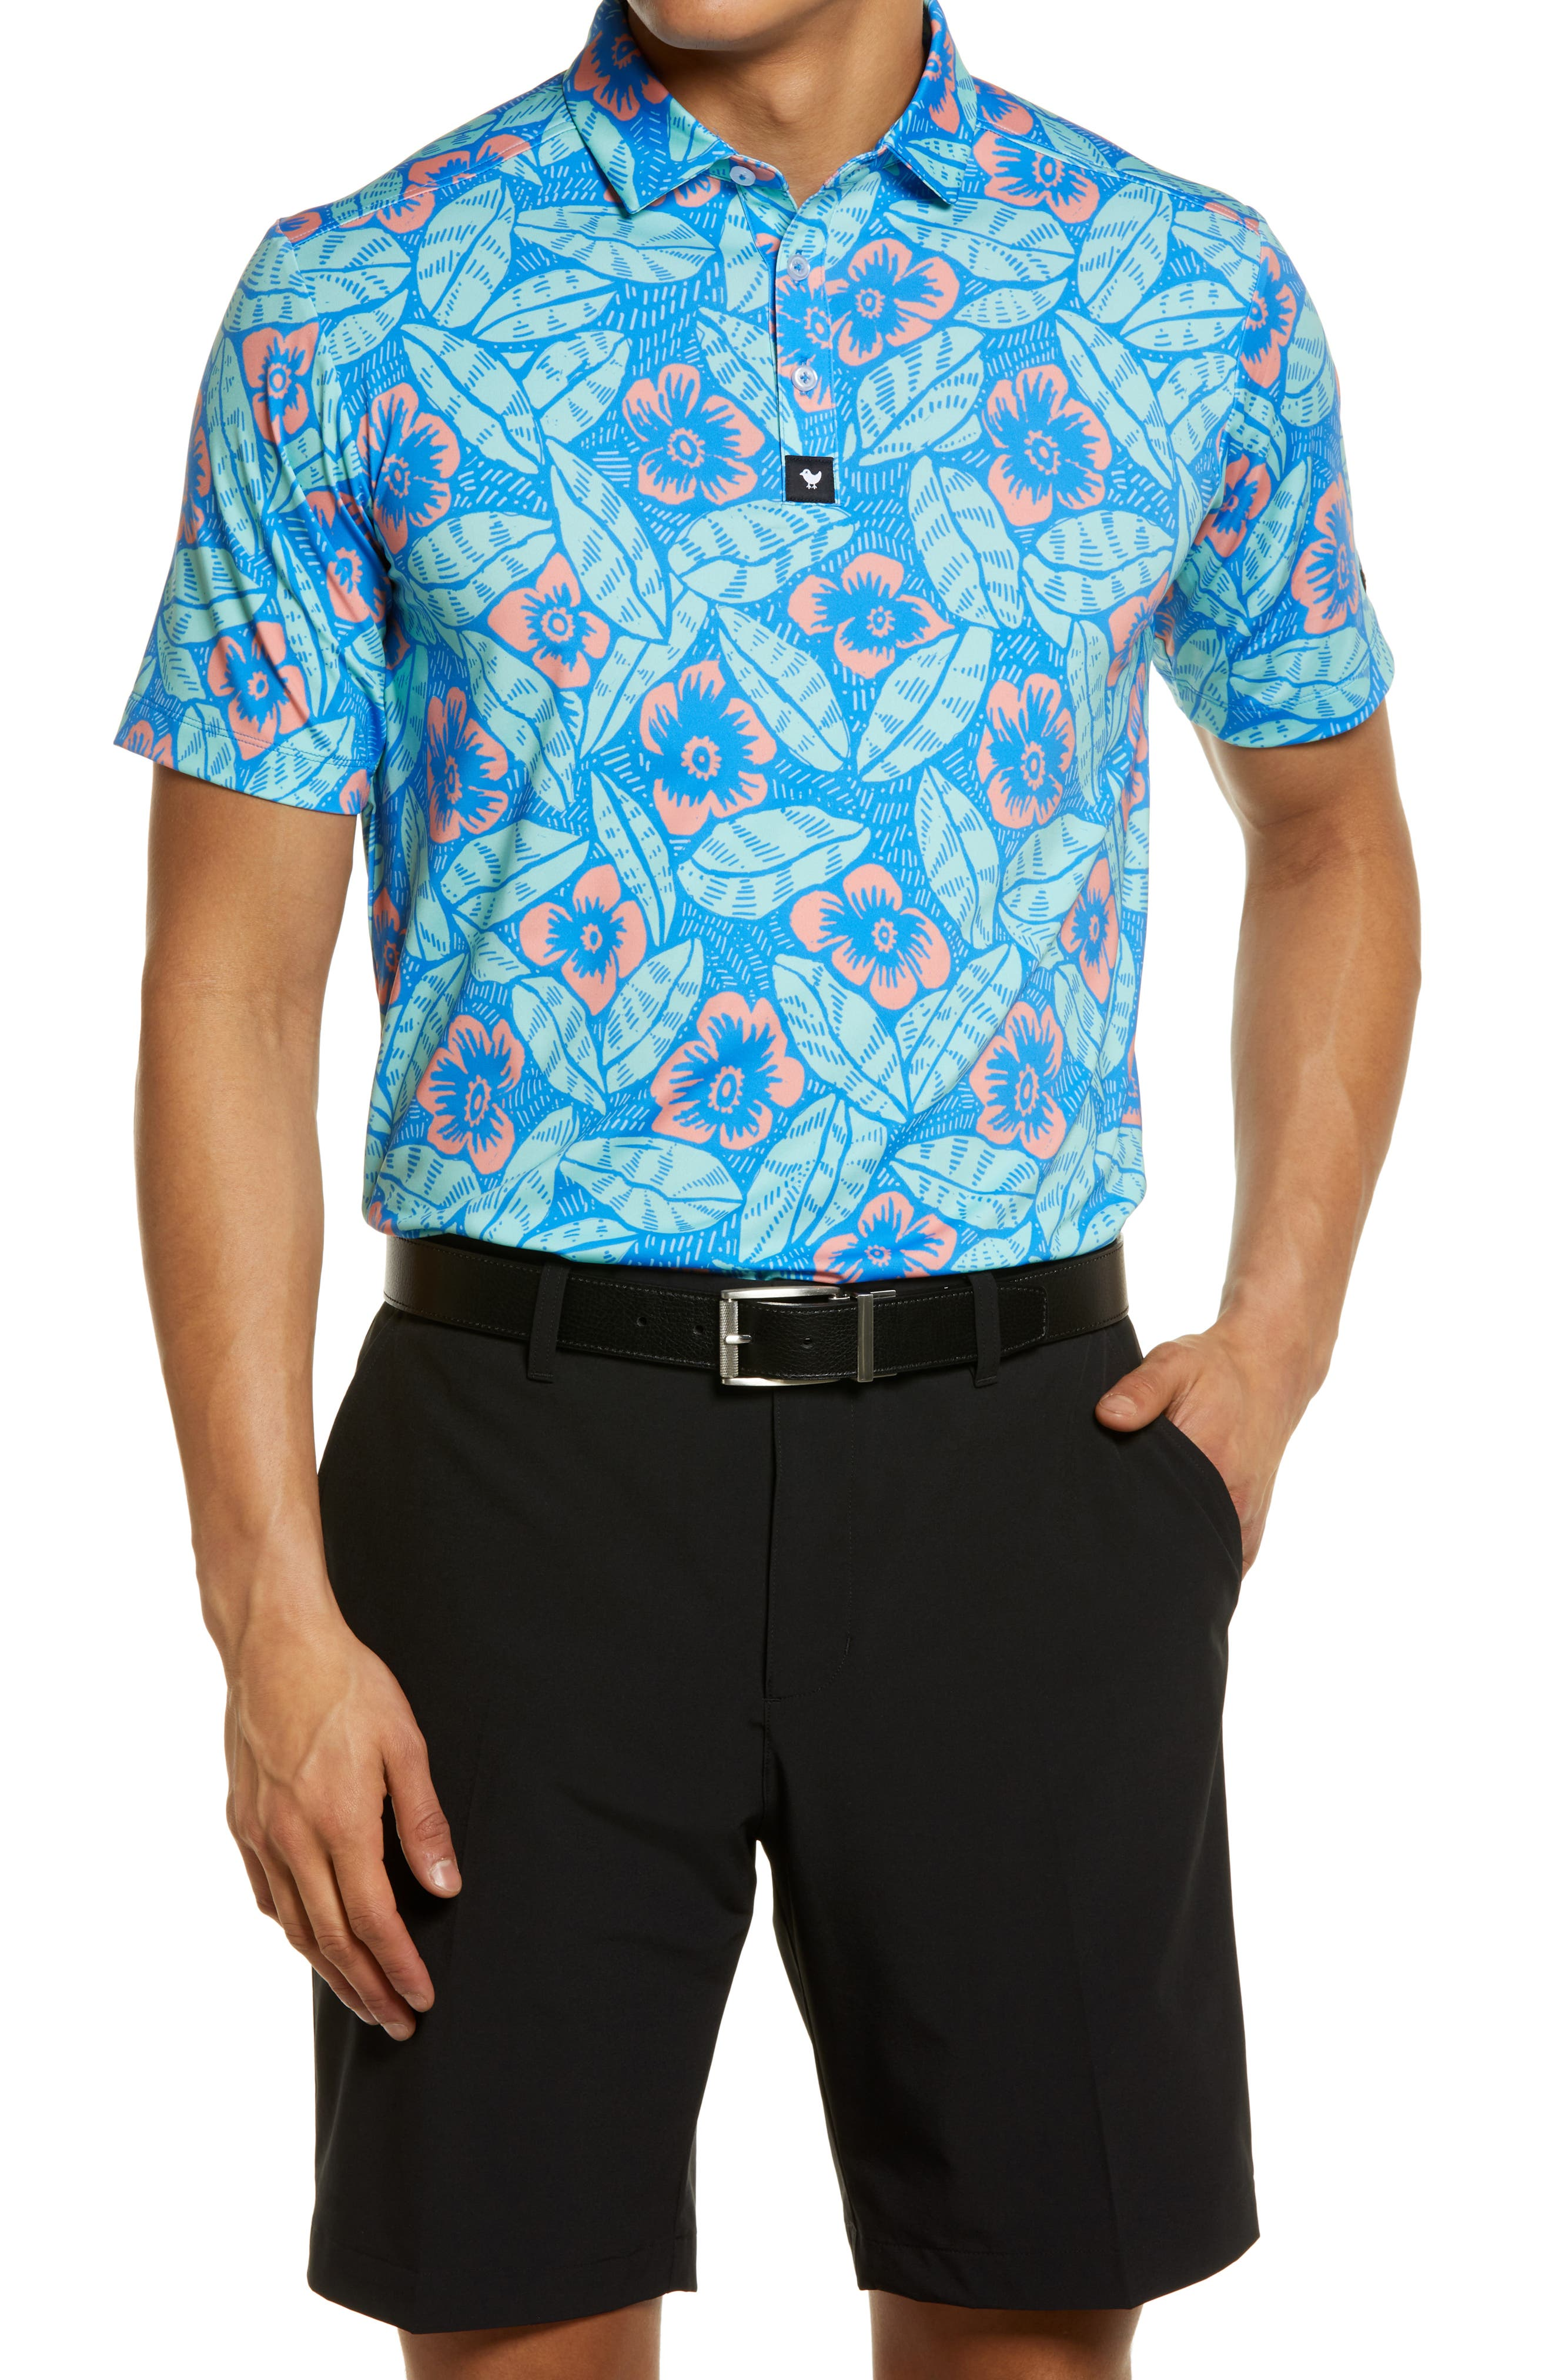 Marco Brolo Floral Short Sleeve Polo